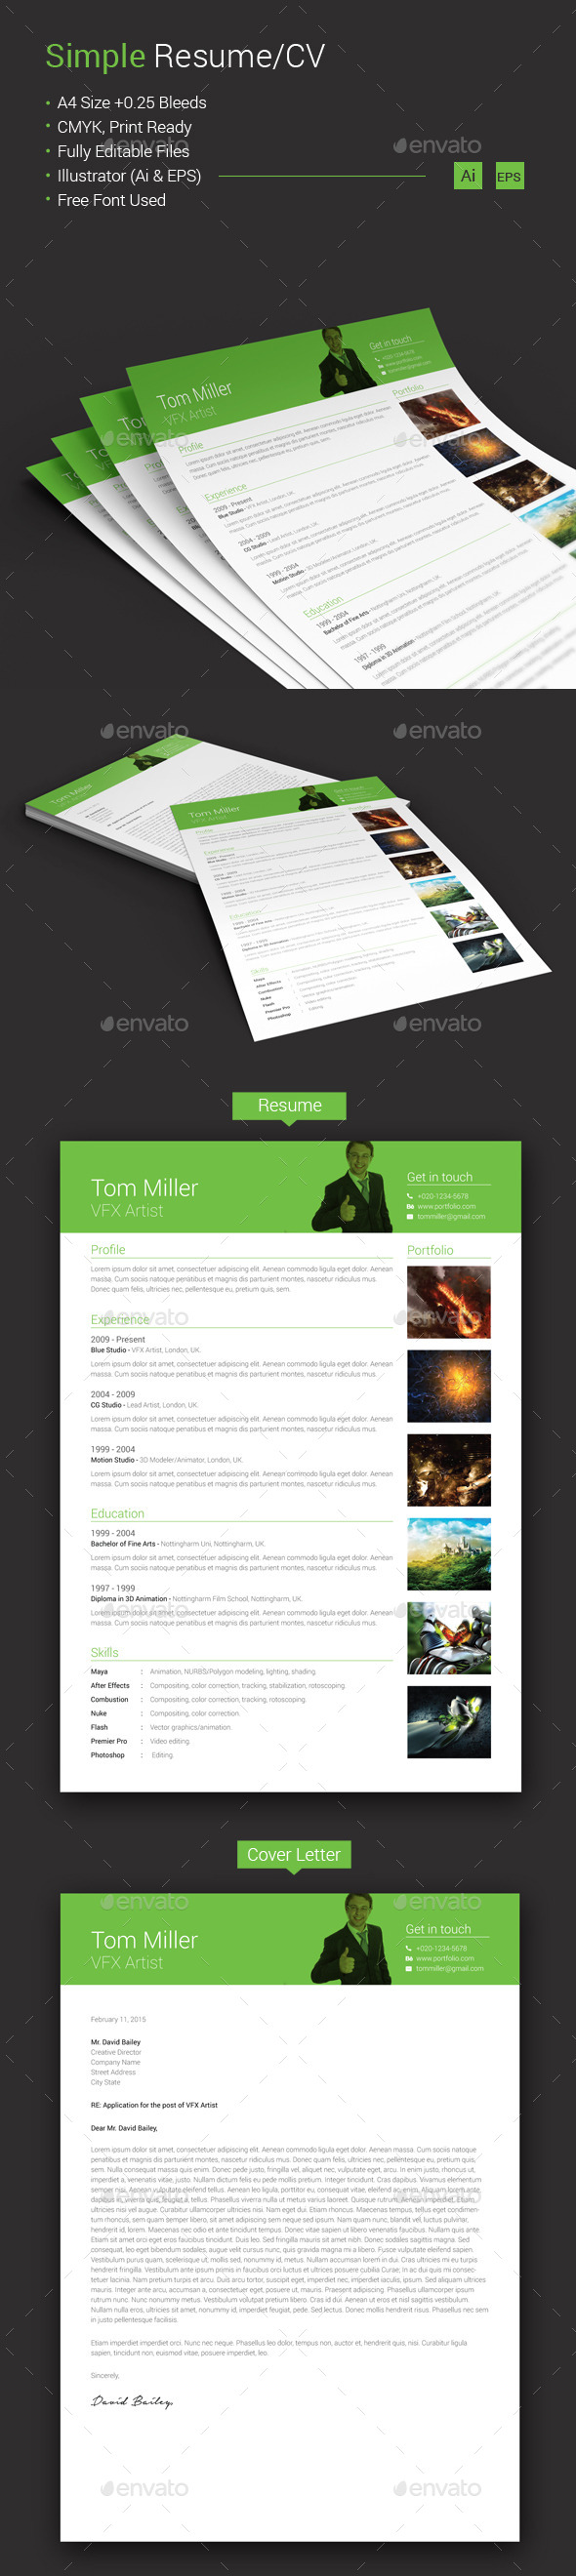 GraphicRiver Simple Resume CV 10637869